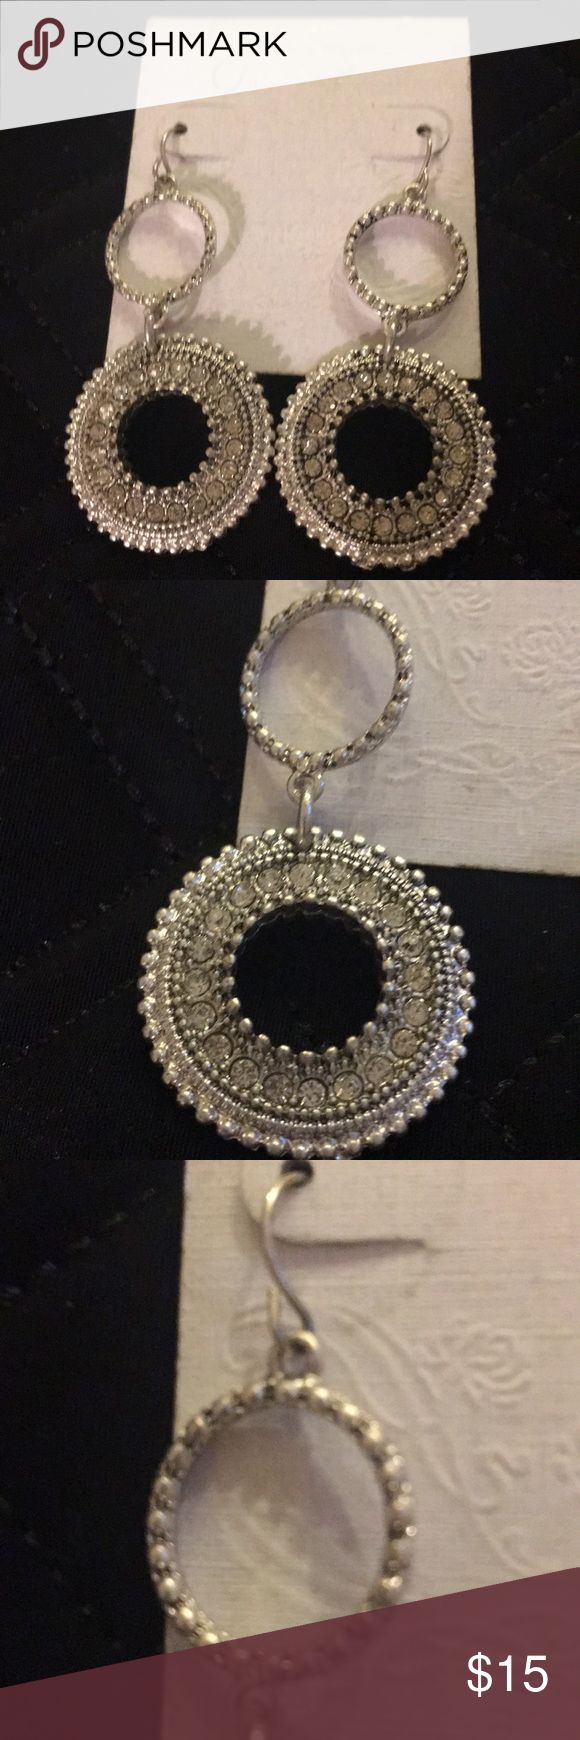 NWT Jessica Simpson Silver Rhinestone Earrings Jessica Simpson silver/rhinestone earrings. Small upper circles are silver metal and  have a circumference of 5/8 inches. The larger circles have a circumference of 1 inch and contain silver and glittery small rhinestones. Jessica Simpson Jewelry Earrings